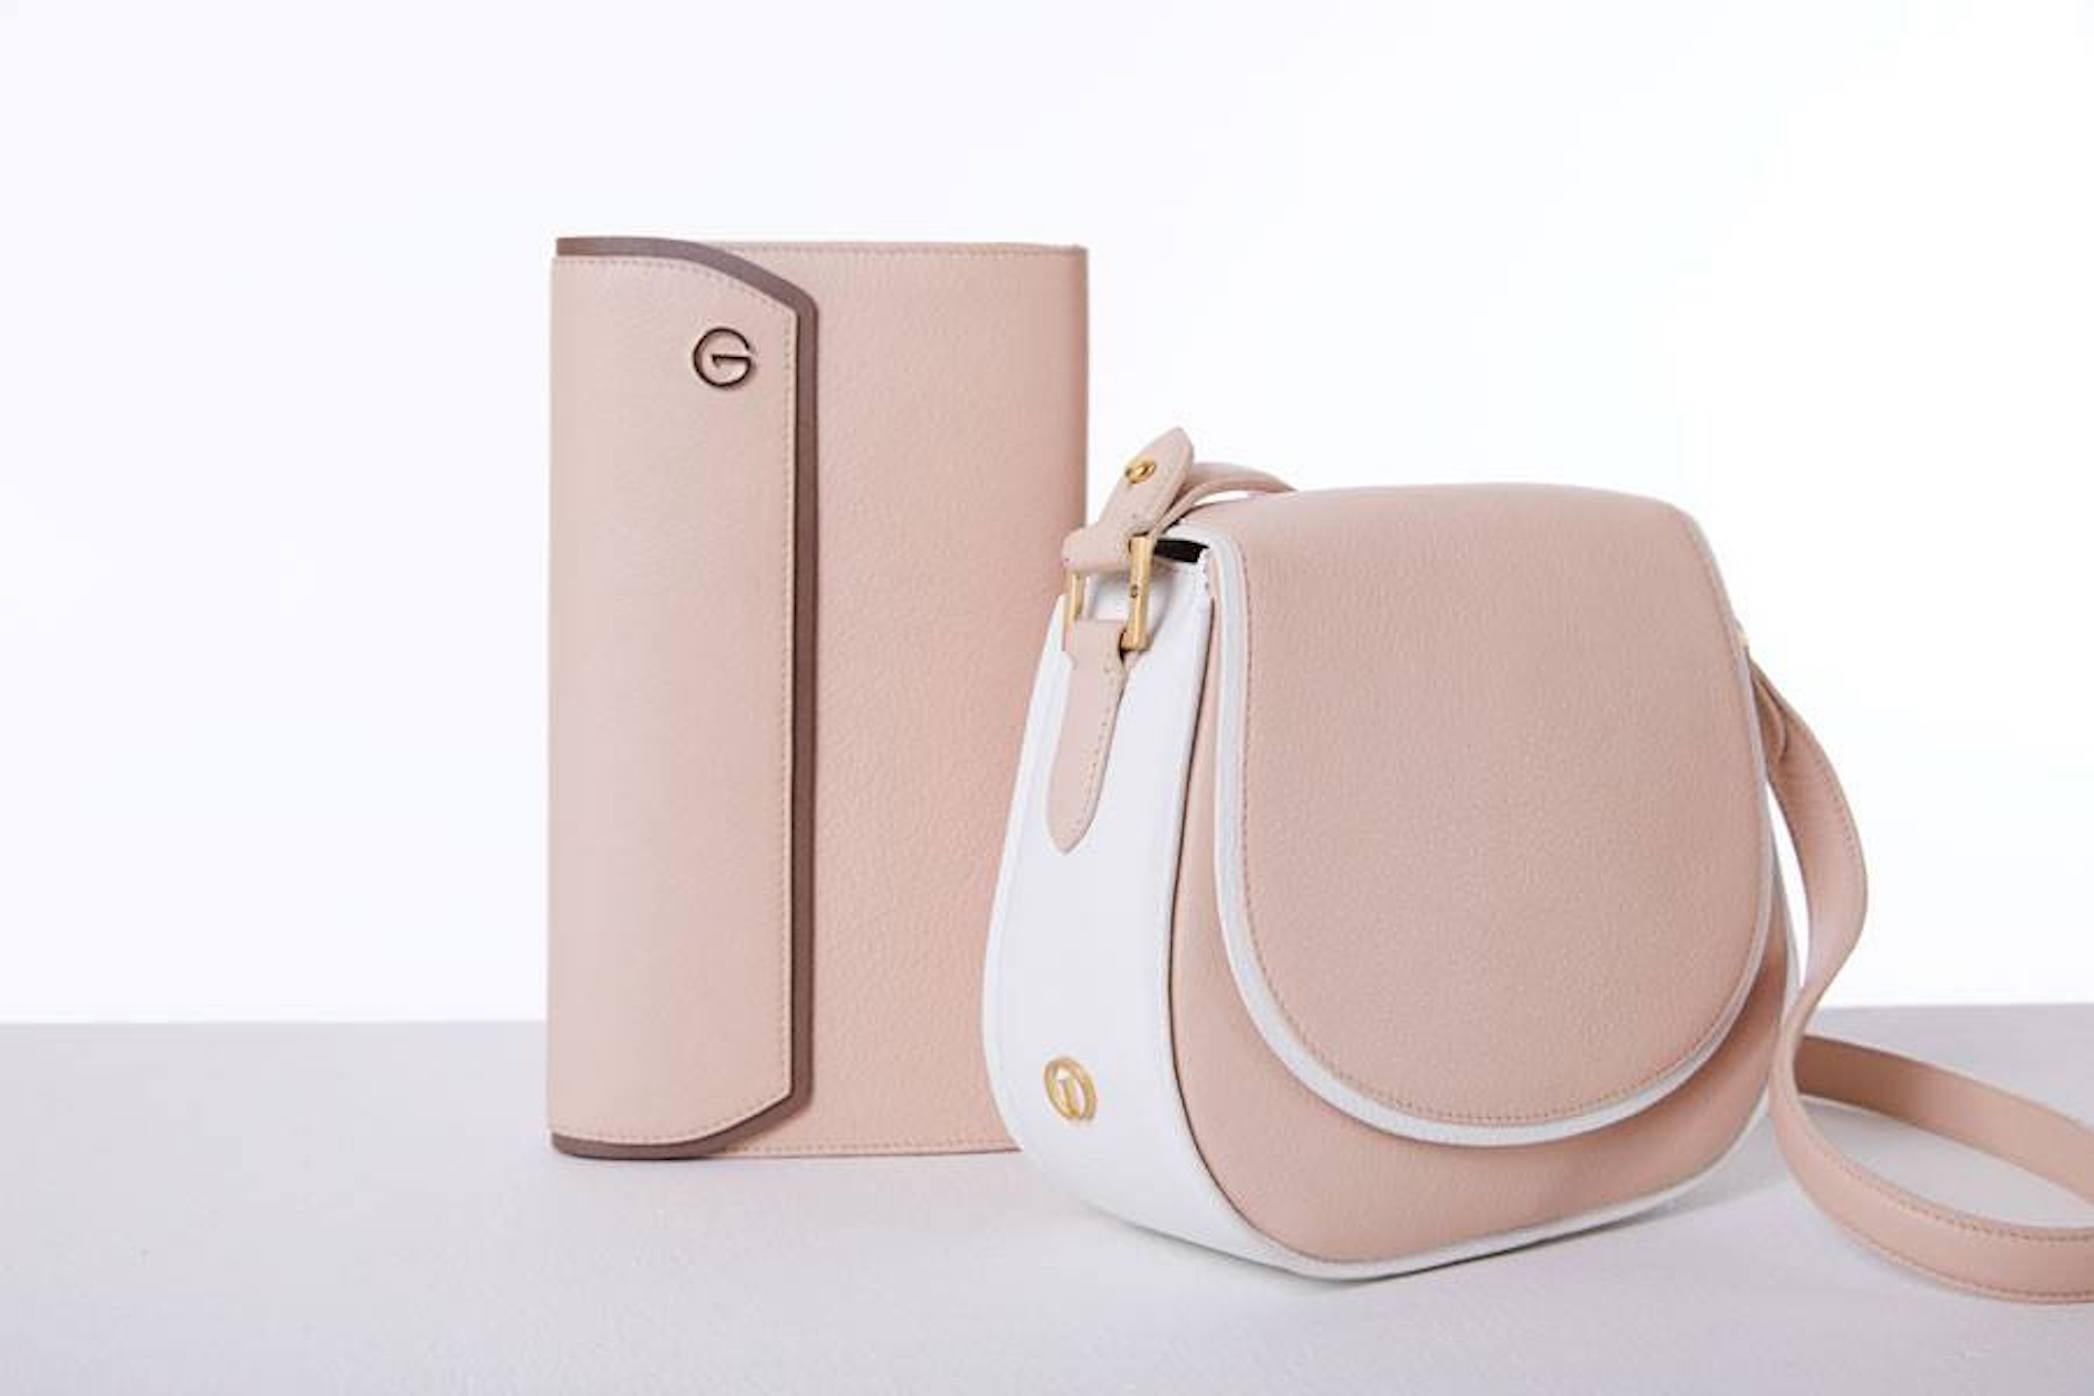 Customisable bags 1 Atelier